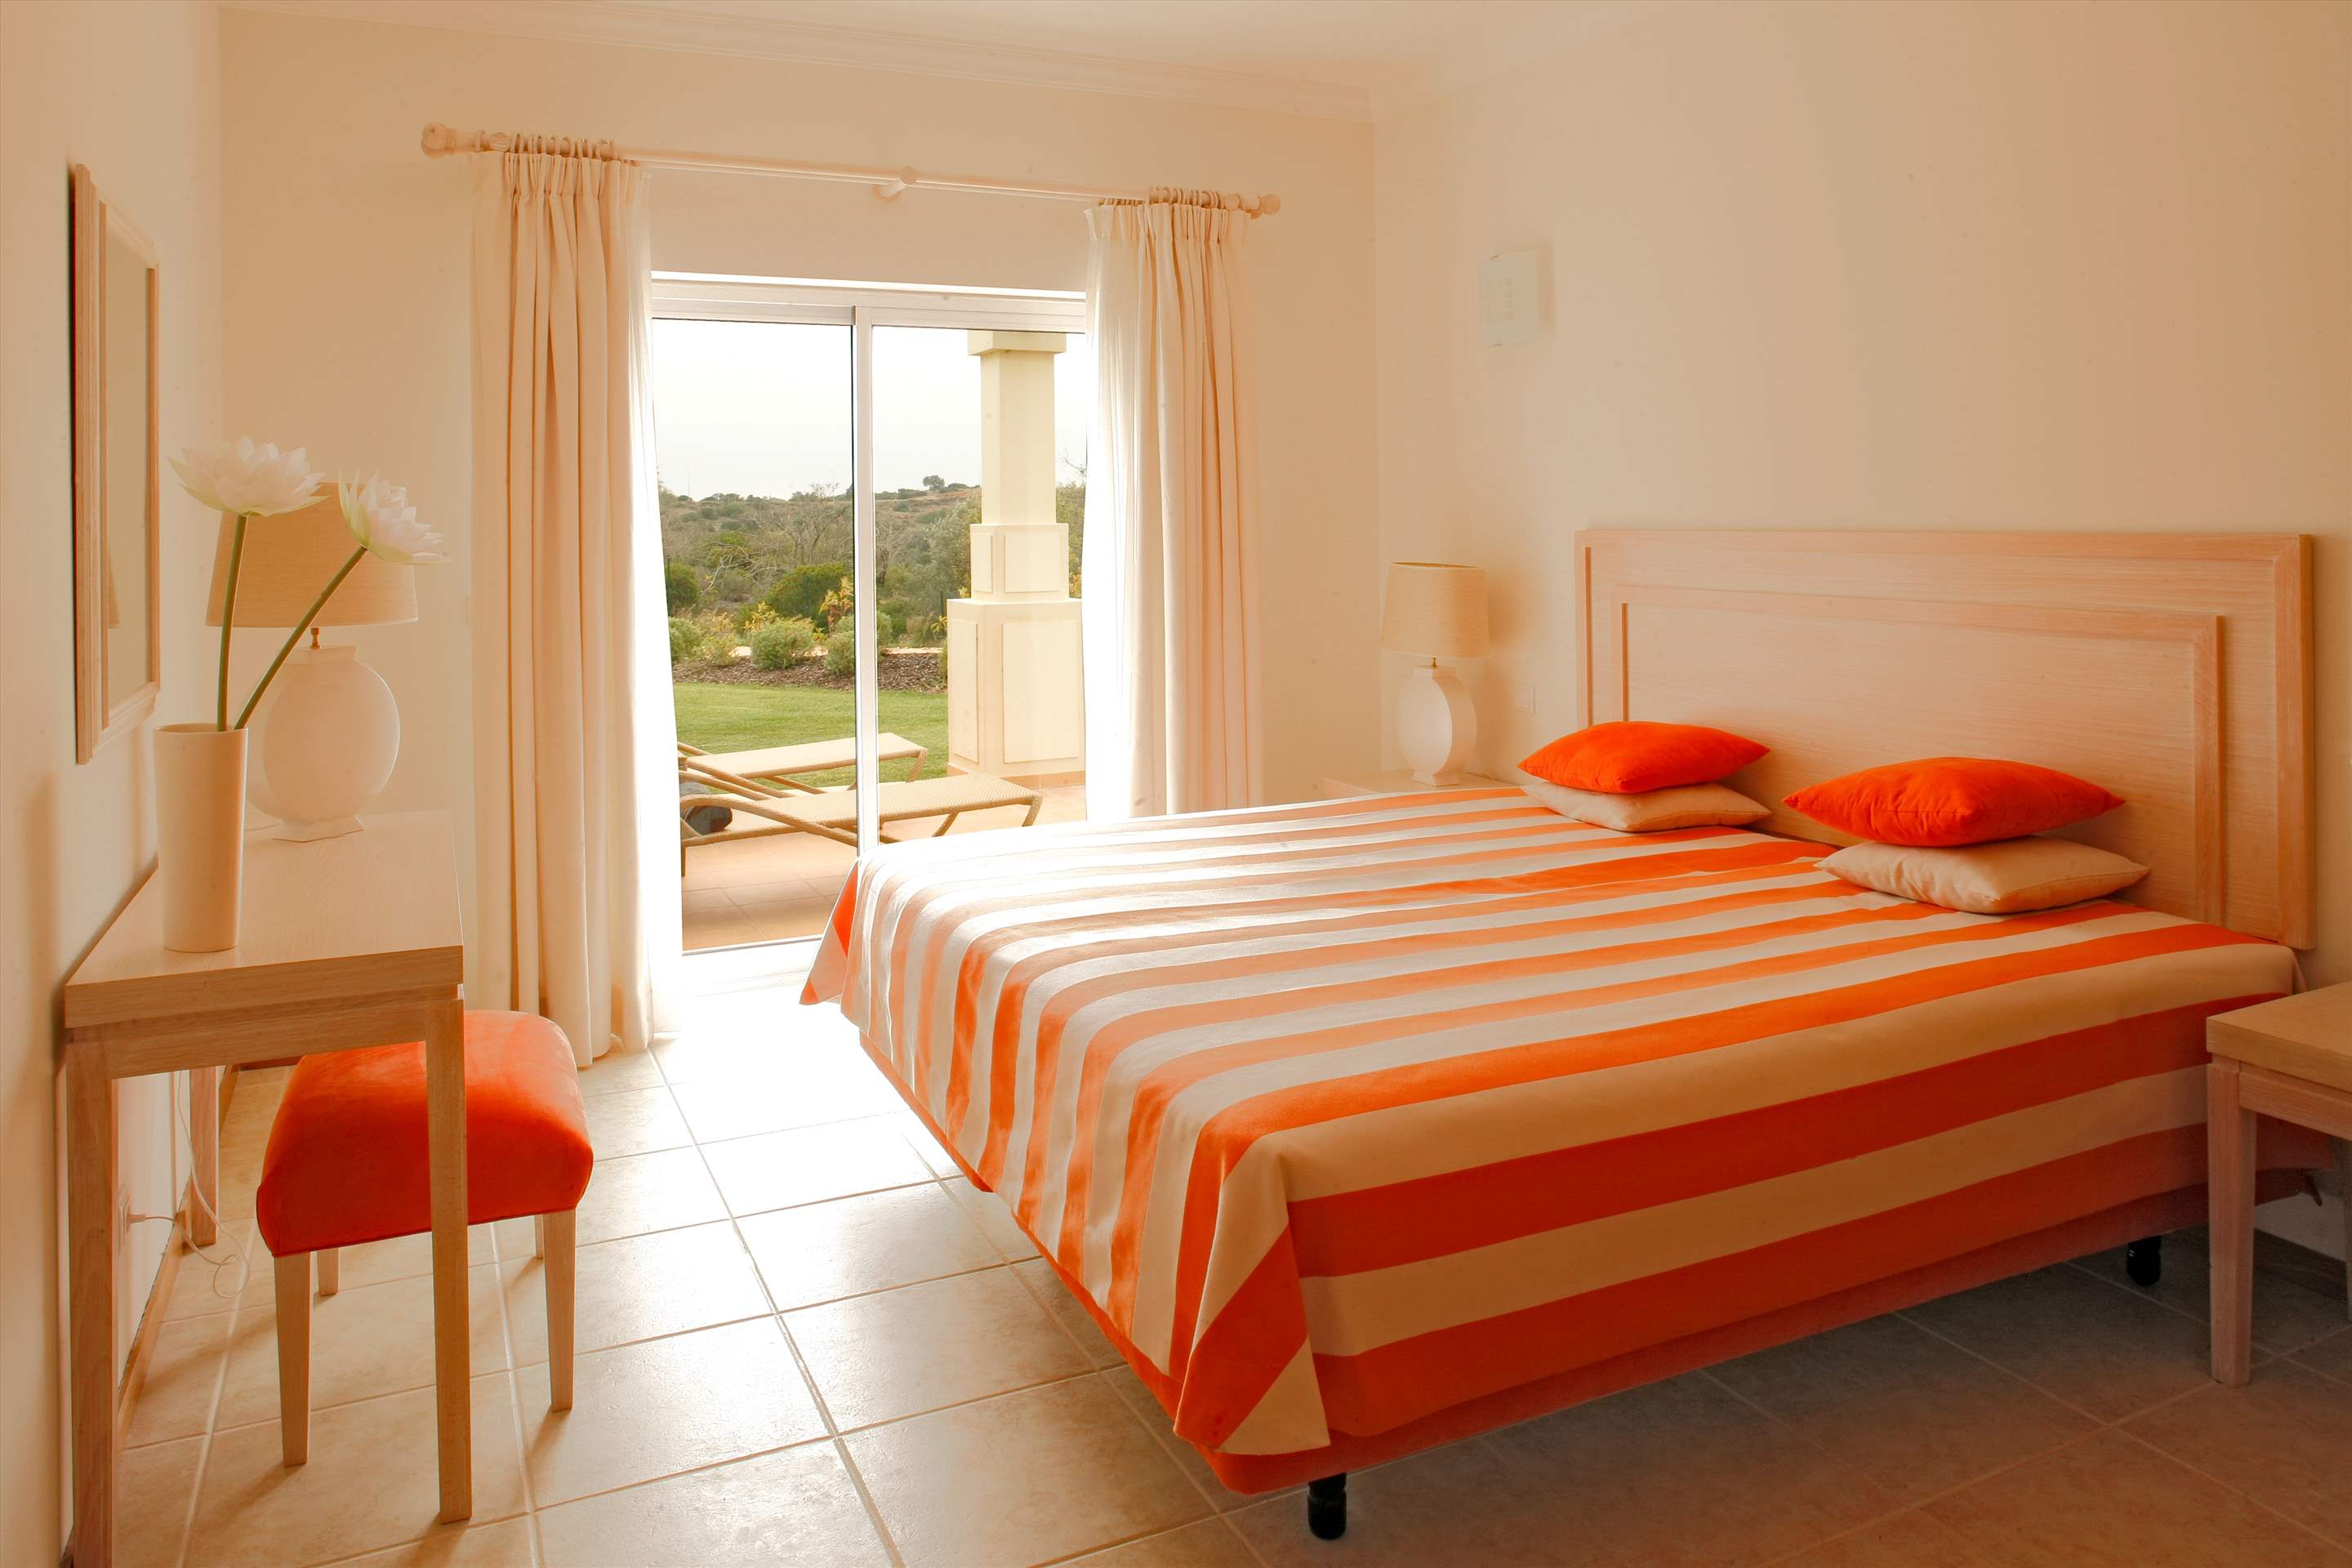 Vale d'Oliveiras 2 Bed Suite Garden View , Bed & Breakfast, 2 bedroom apartment in Vale d'Oliveiras Resort & Spa, Algarve Photo #3